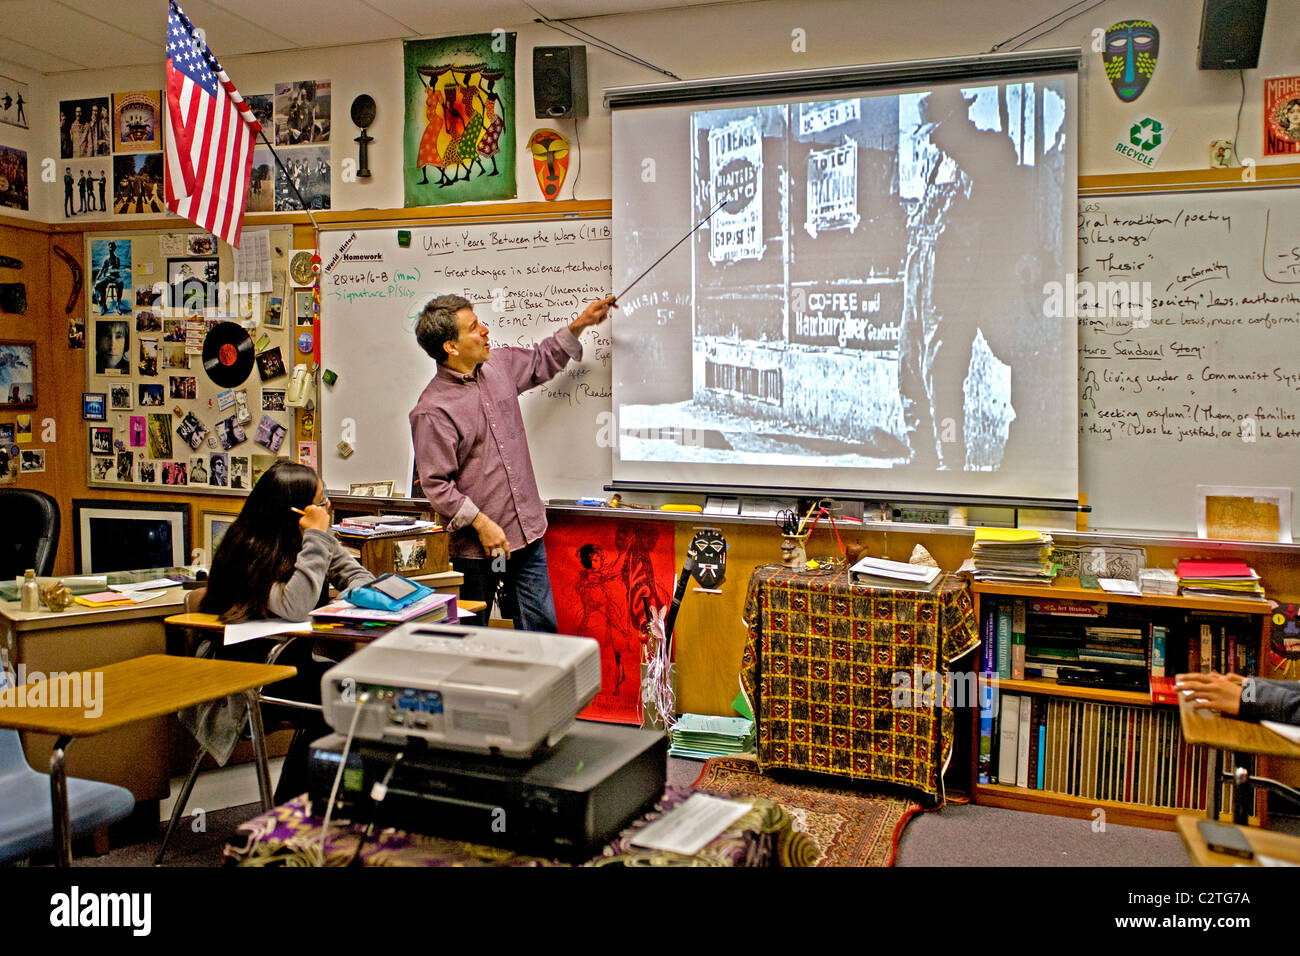 A history teacher uses a liquid crystal display (LCD) projector while lecturing to his class on the Great Depression. - Stock Image